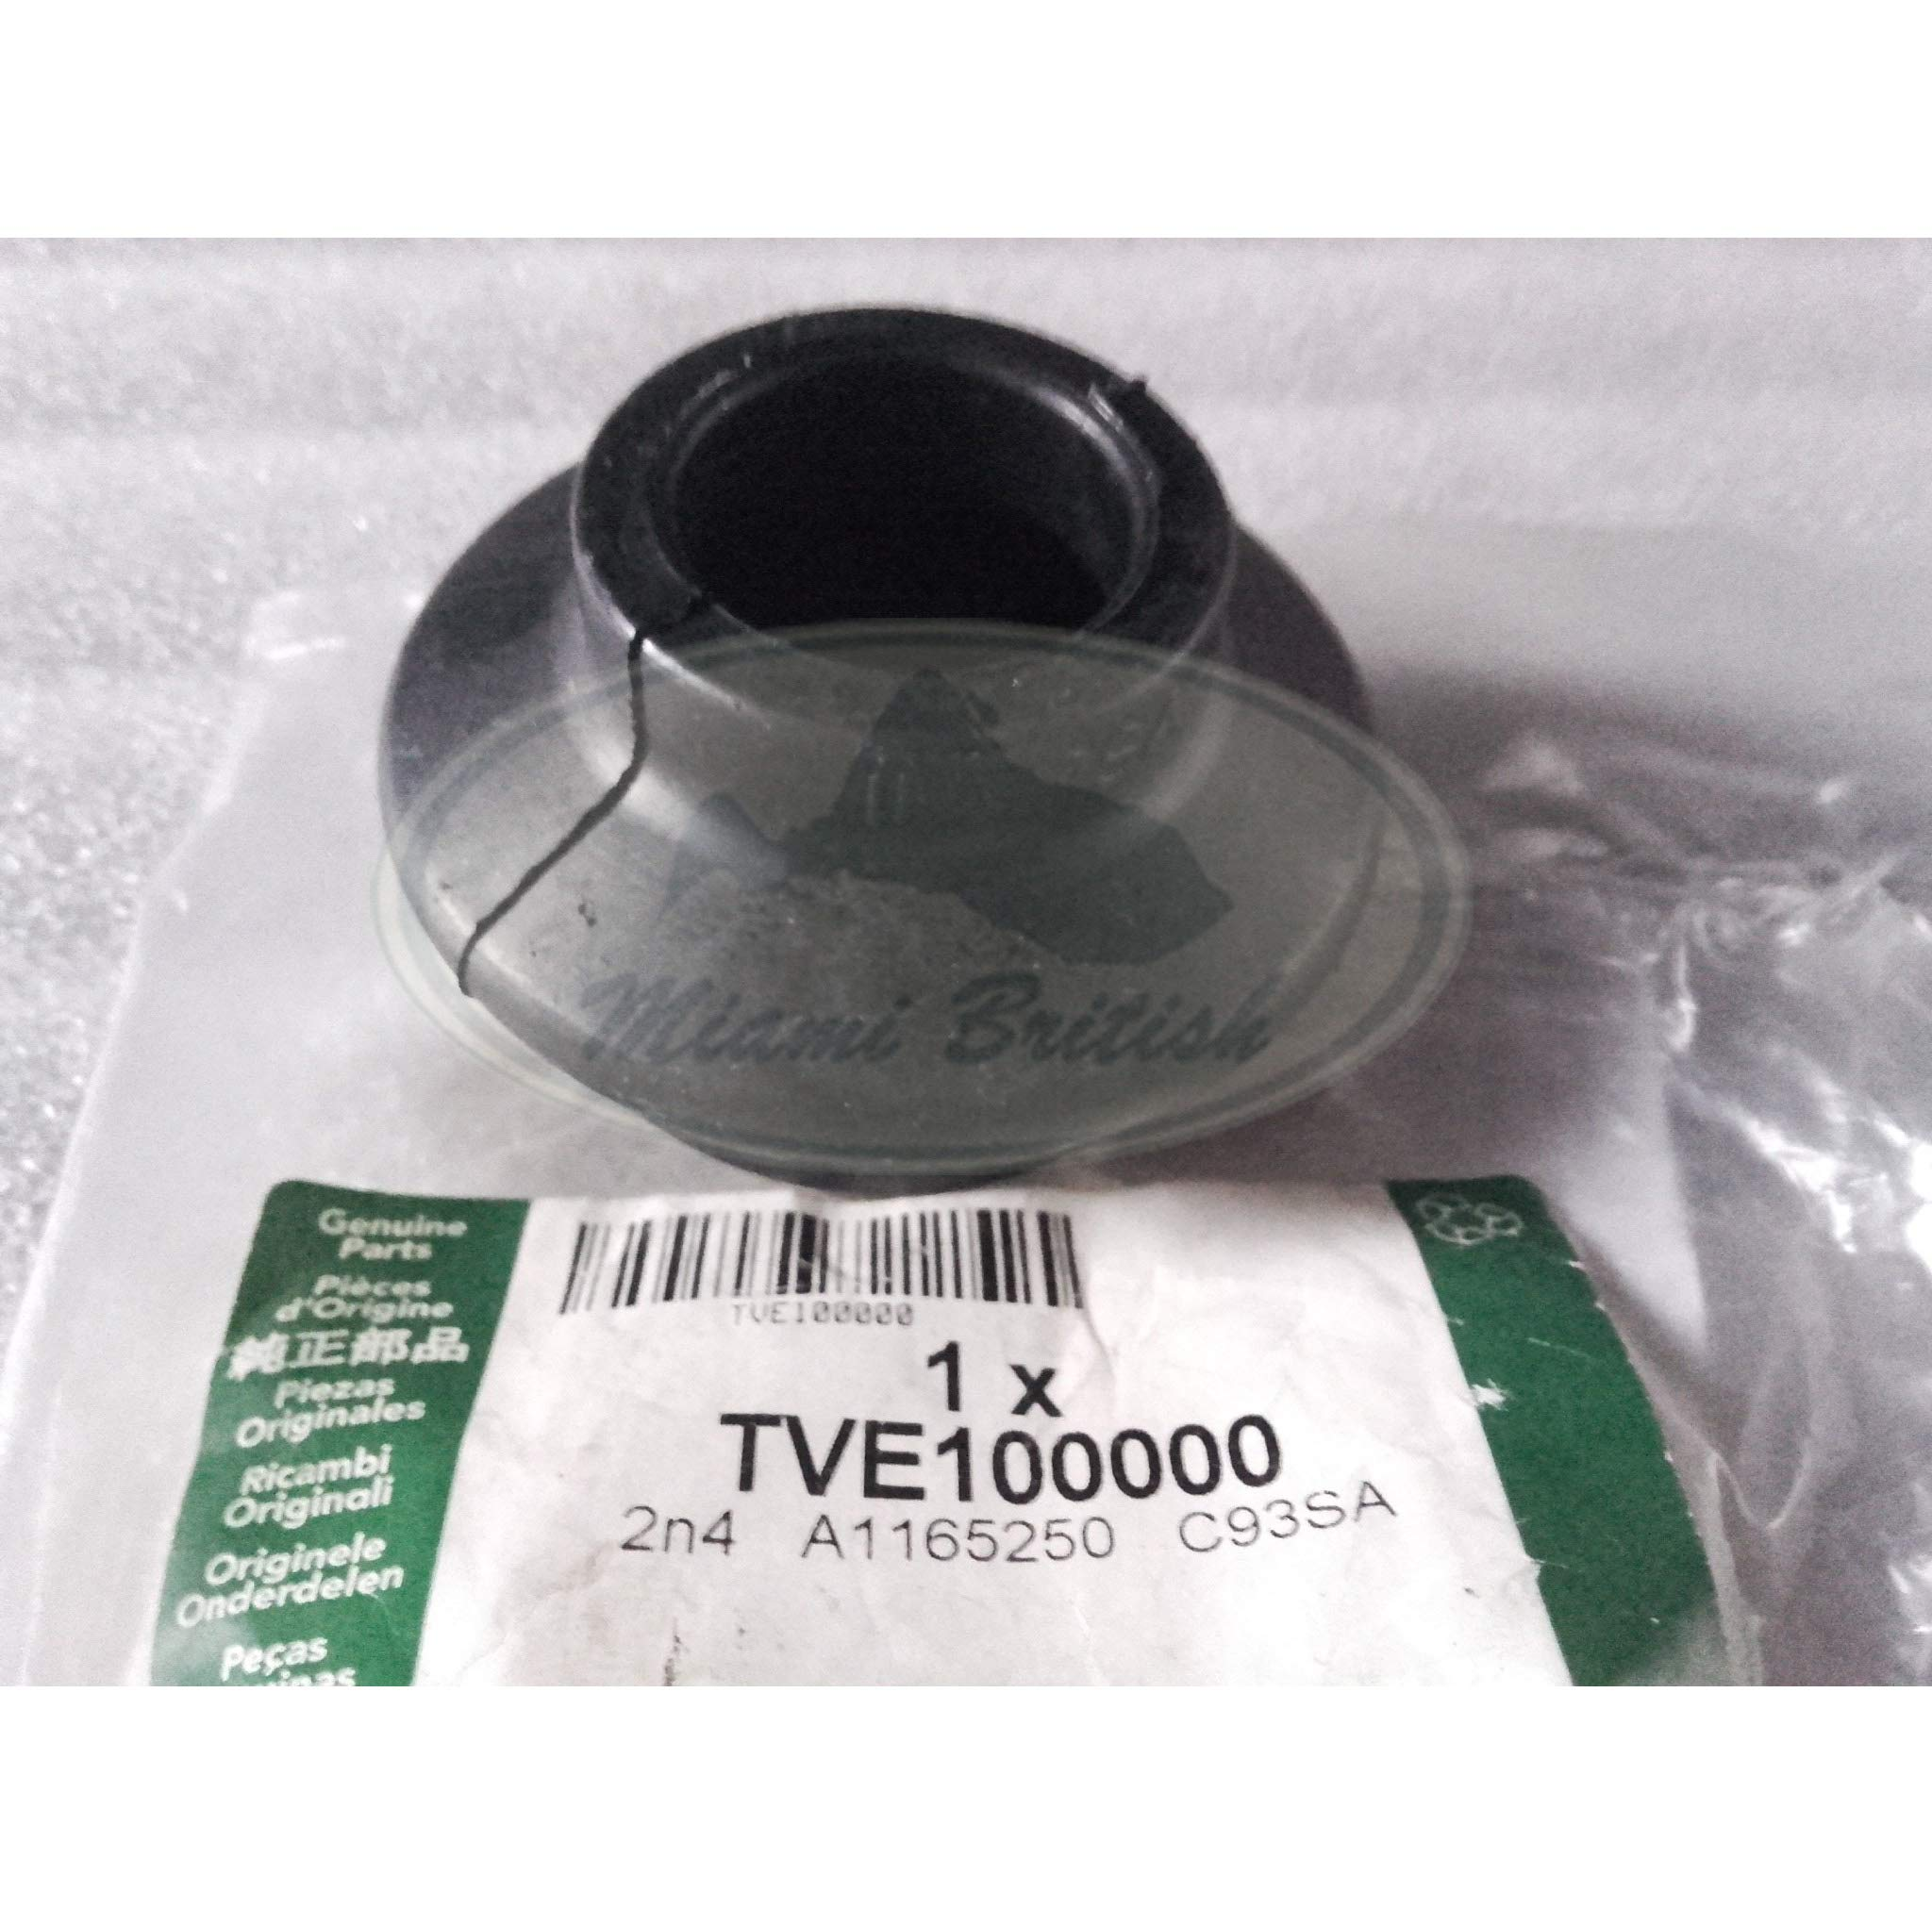 LAND ROVER PROPSHAFT GAITER DISCOVERY I & II RR CLASSIC DEFENDER TVE100000 OEM